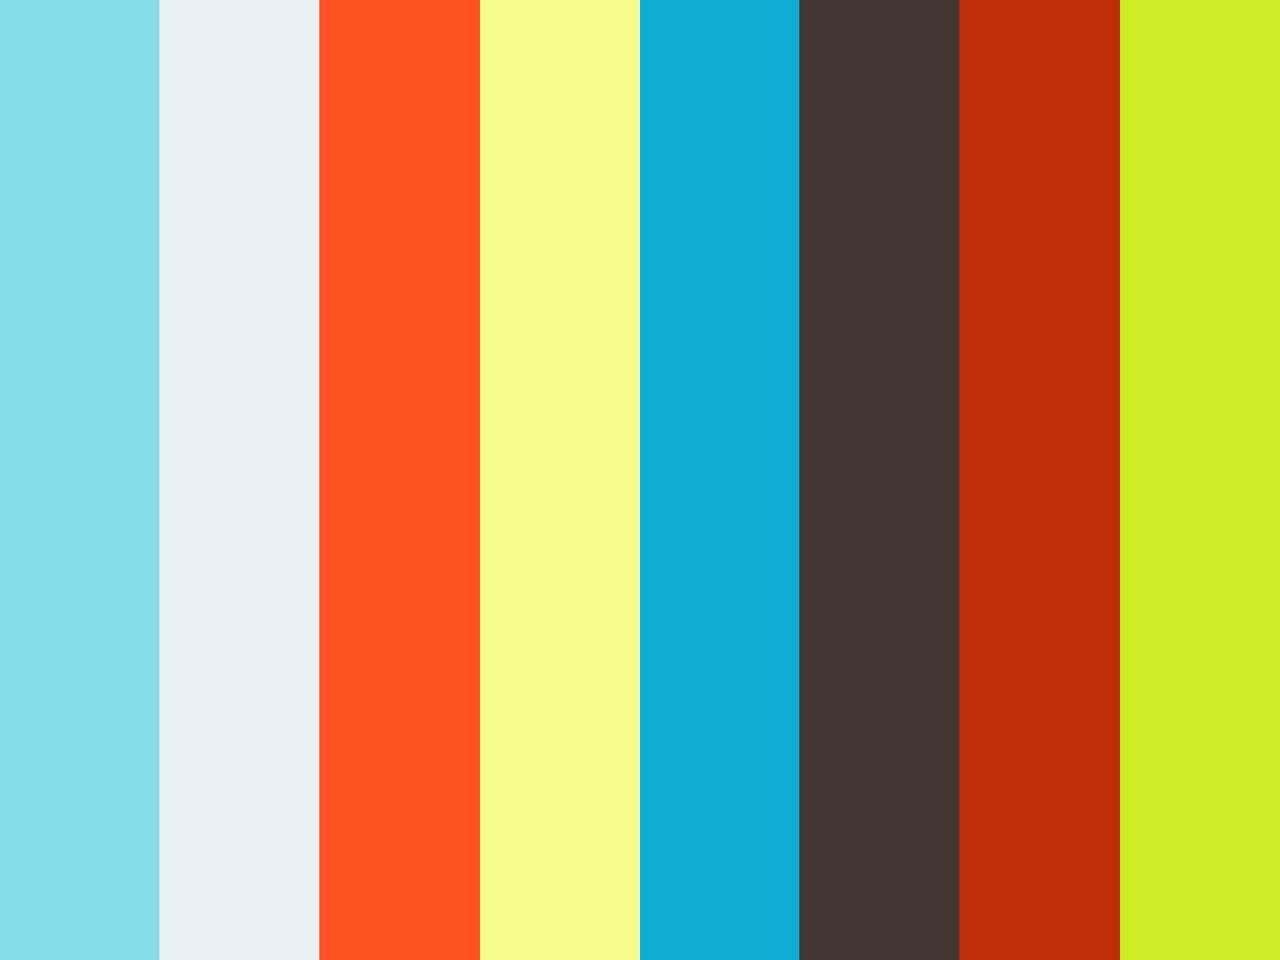 Causes of depression essay